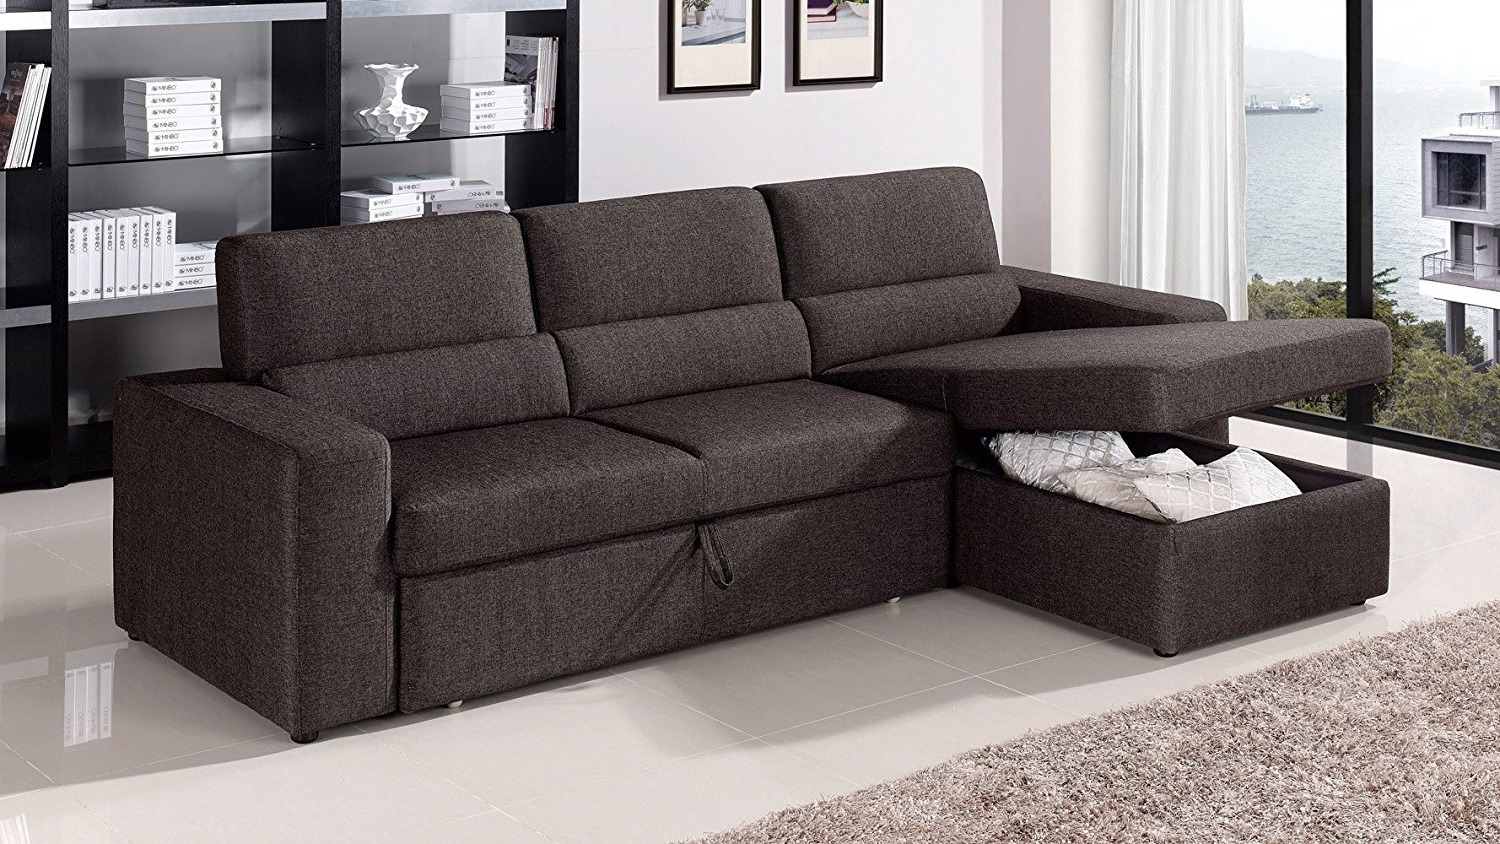 Newest Sleeper Chaises In Amazon: Black/brown Clubber Sleeper Sectional Sofa – Left (View 14 of 15)